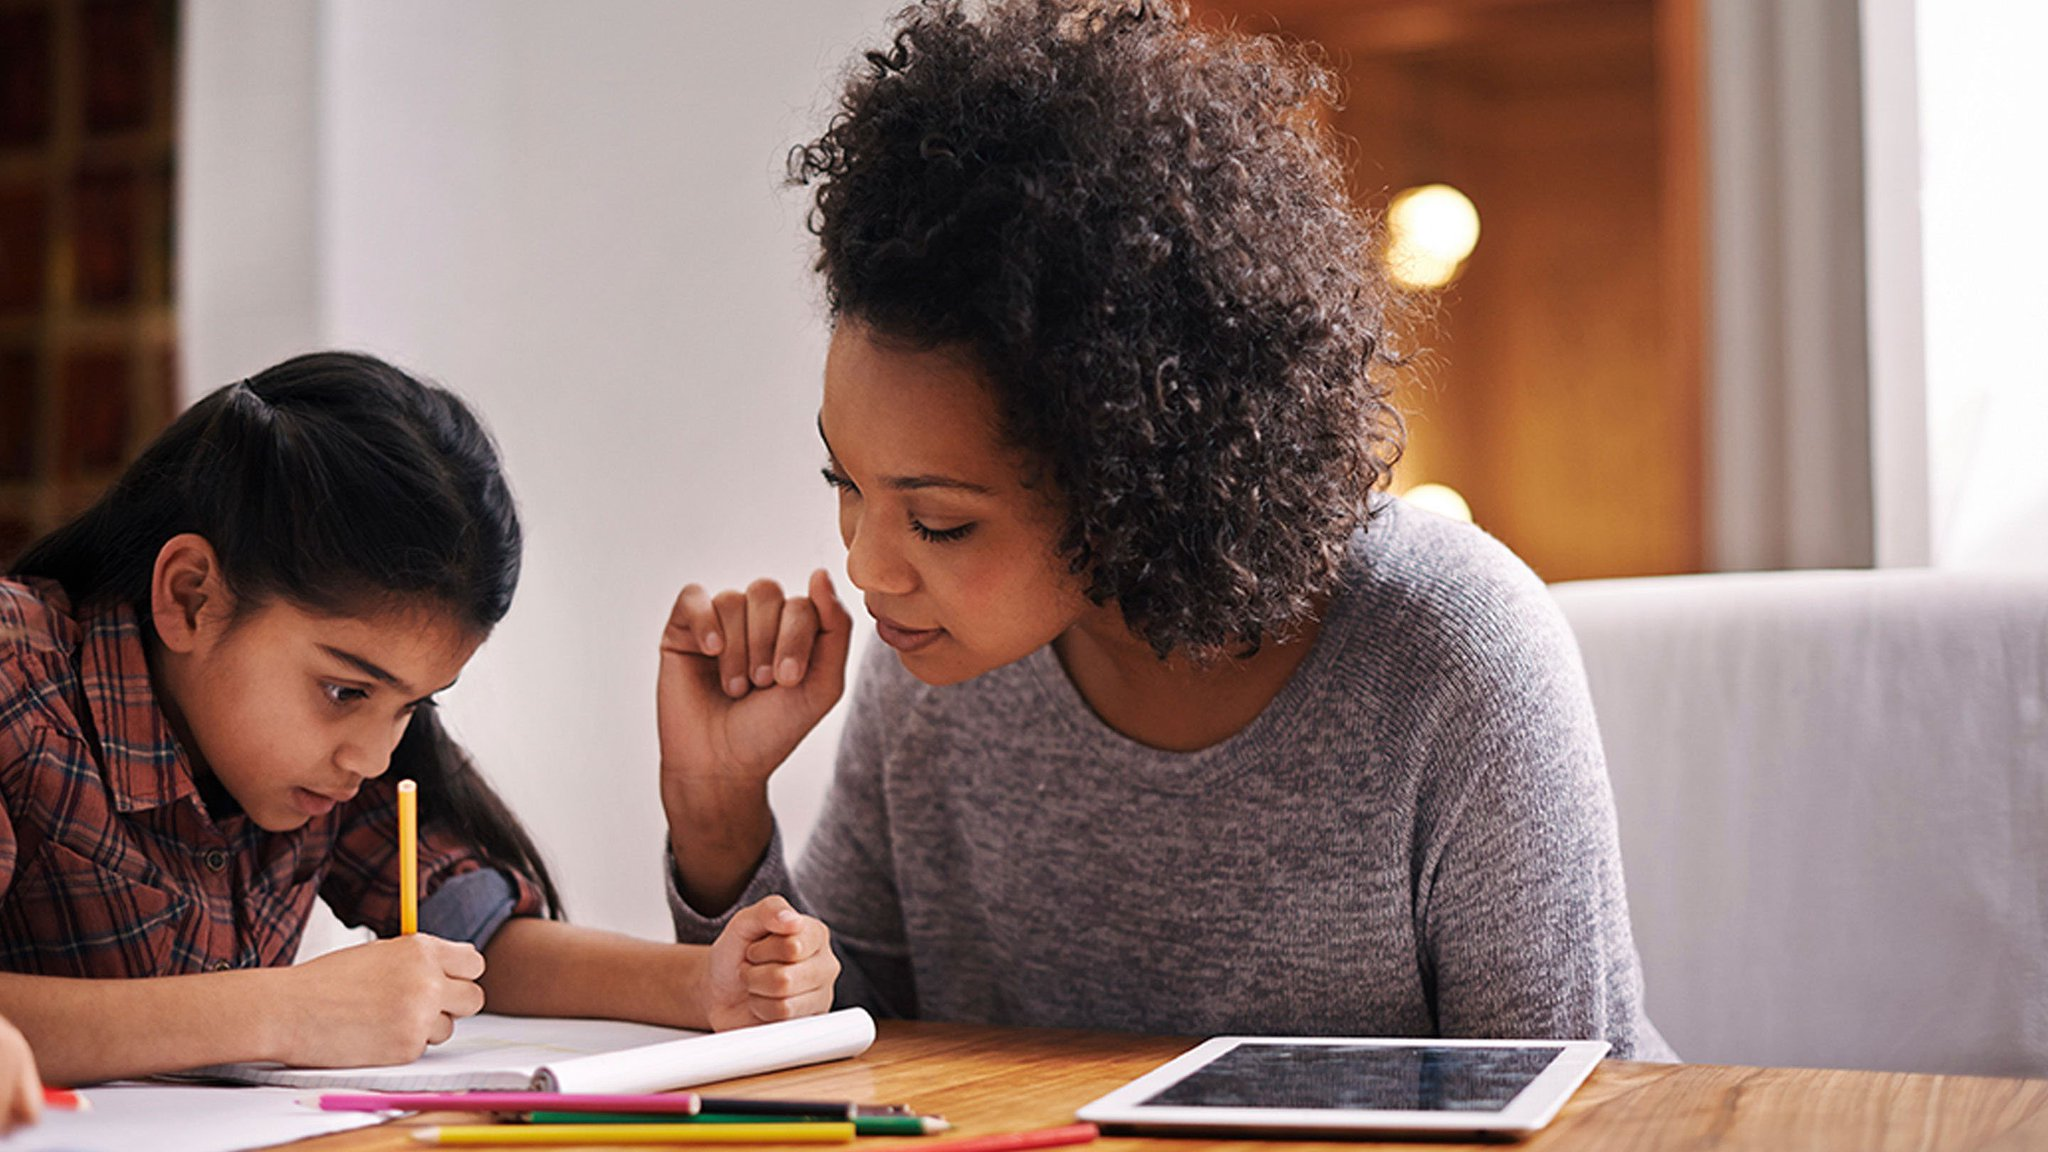 How to use technology to keep parents in the loop: https://t.co/ocQ6DcUABc. #ptchat https://t.co/IS3Lt7uVmf